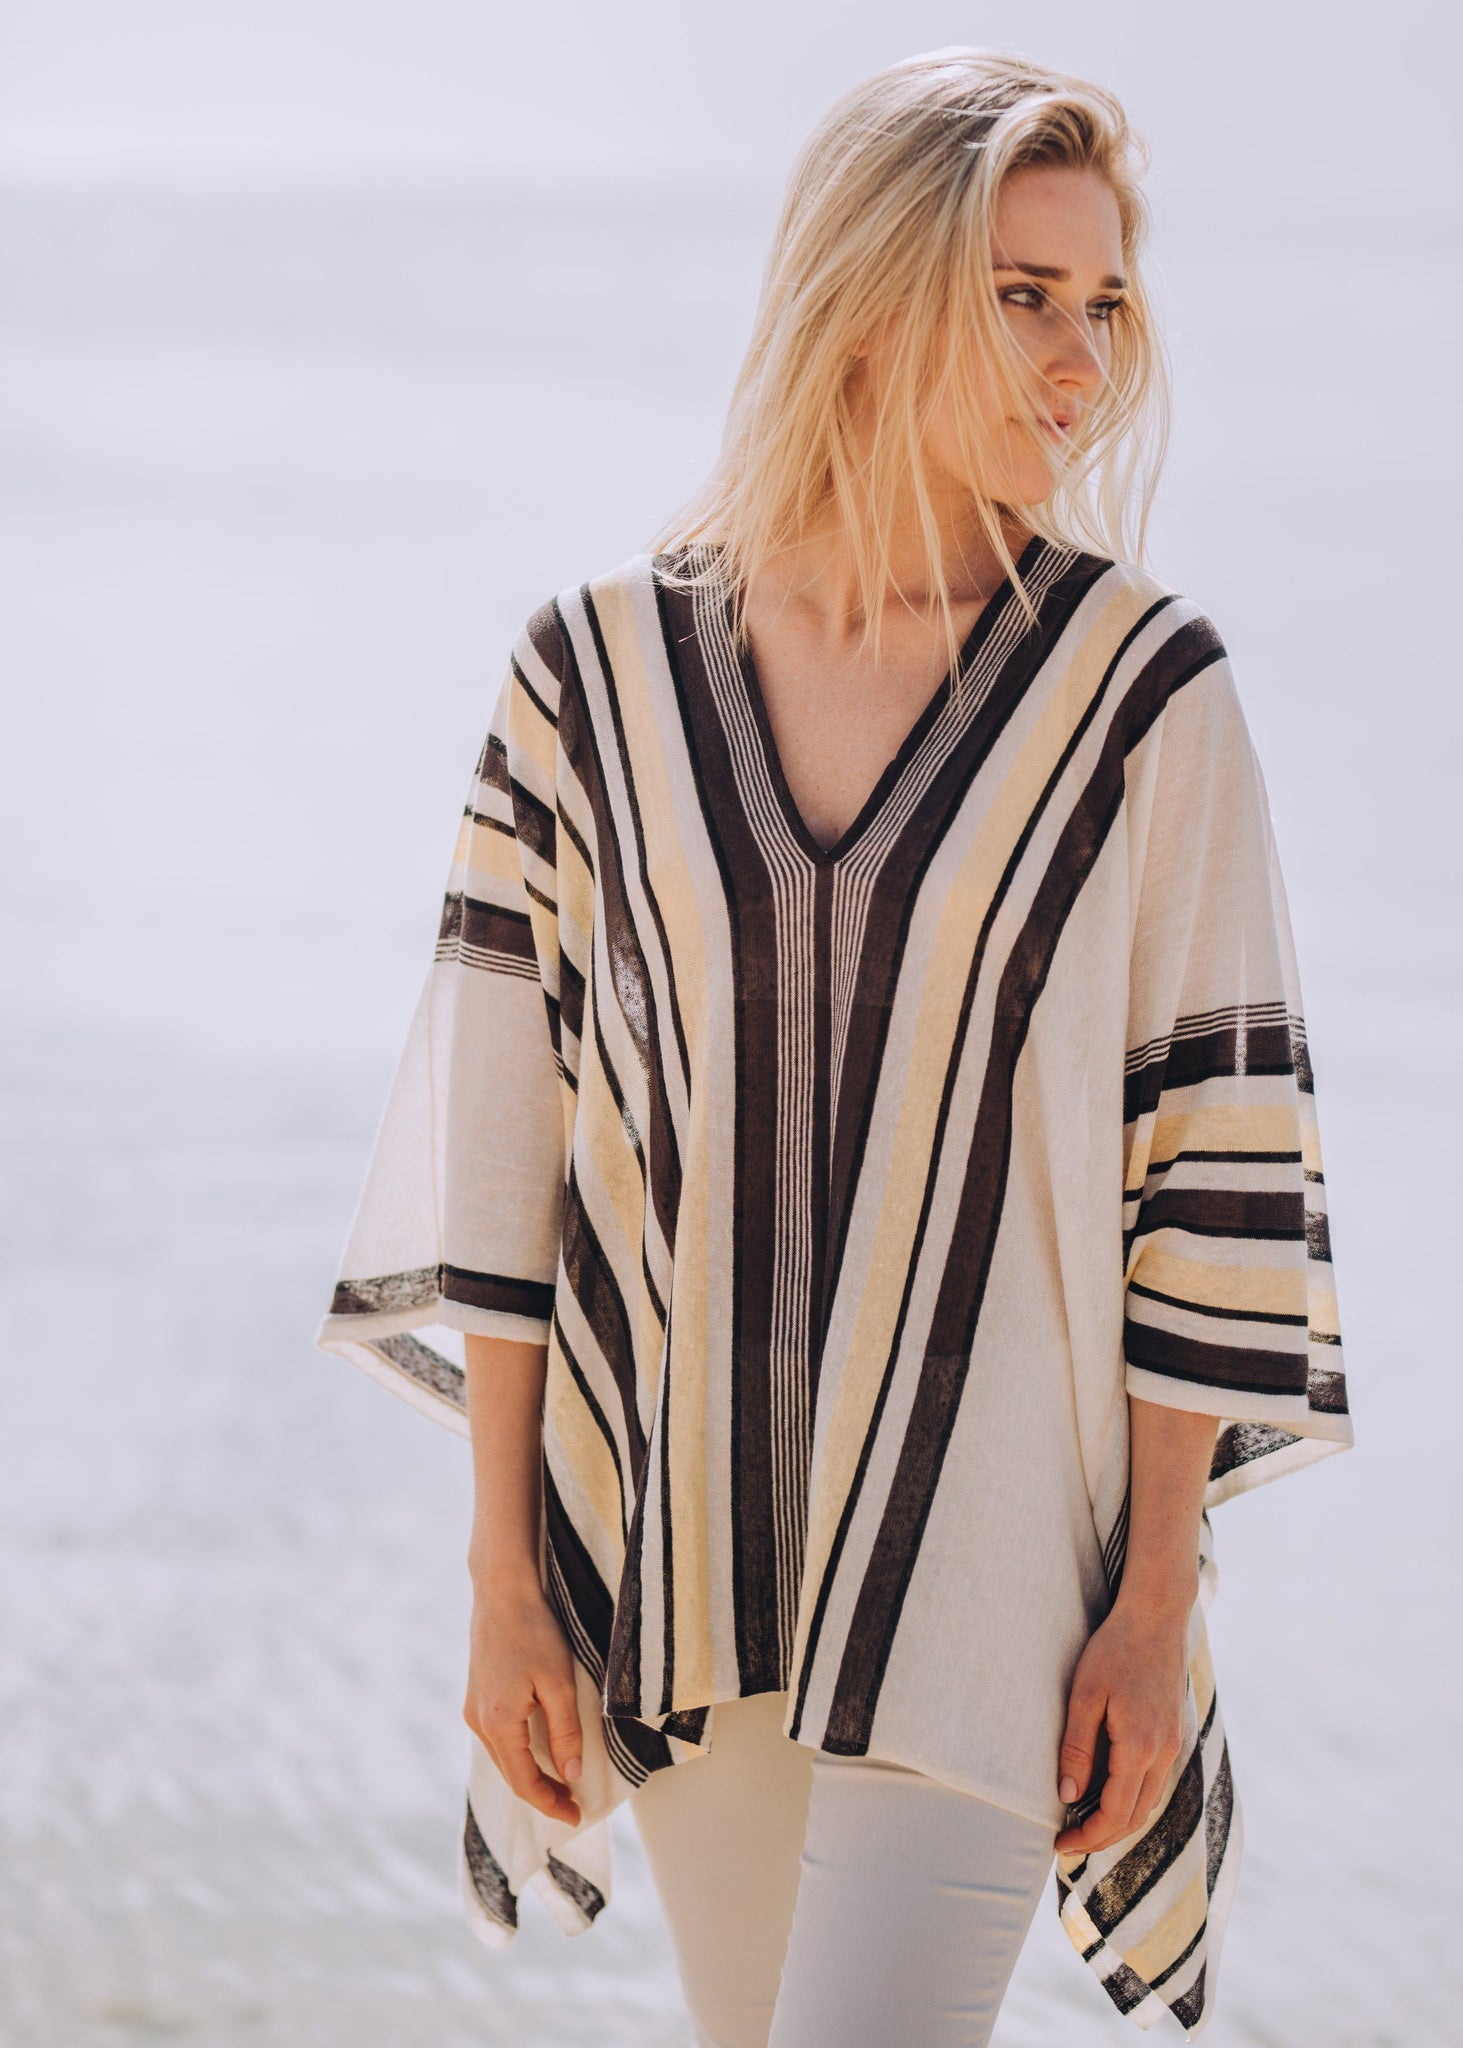 RONJA | Our fine linen mix stripe poncho